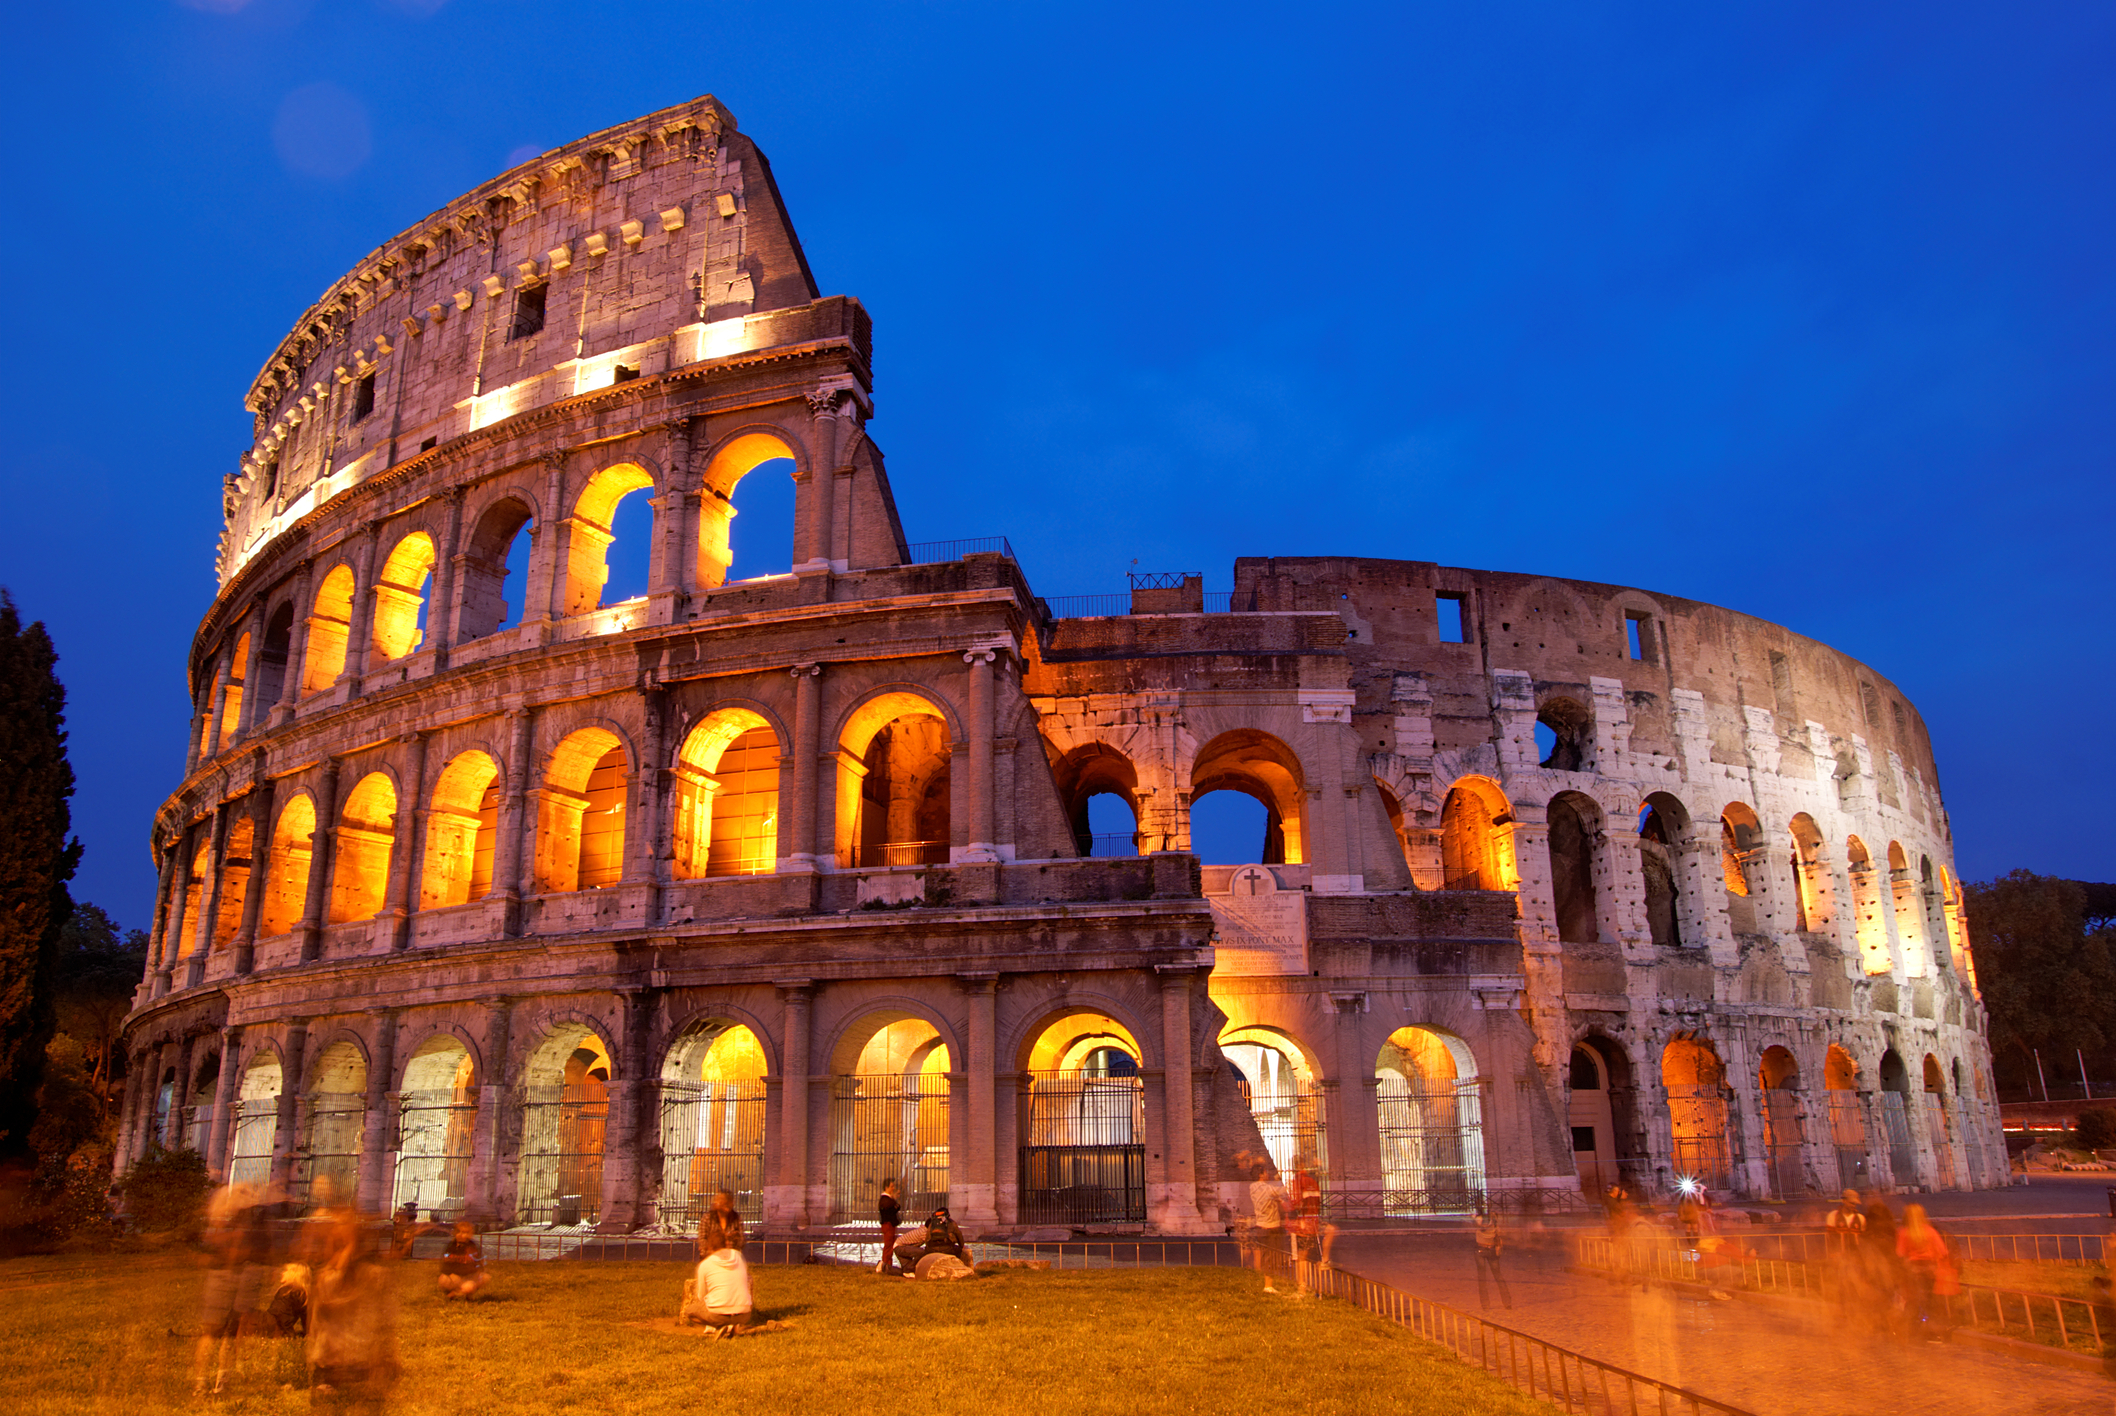 In 847, a massive earthquake destroys the southern side of the Colosseum.